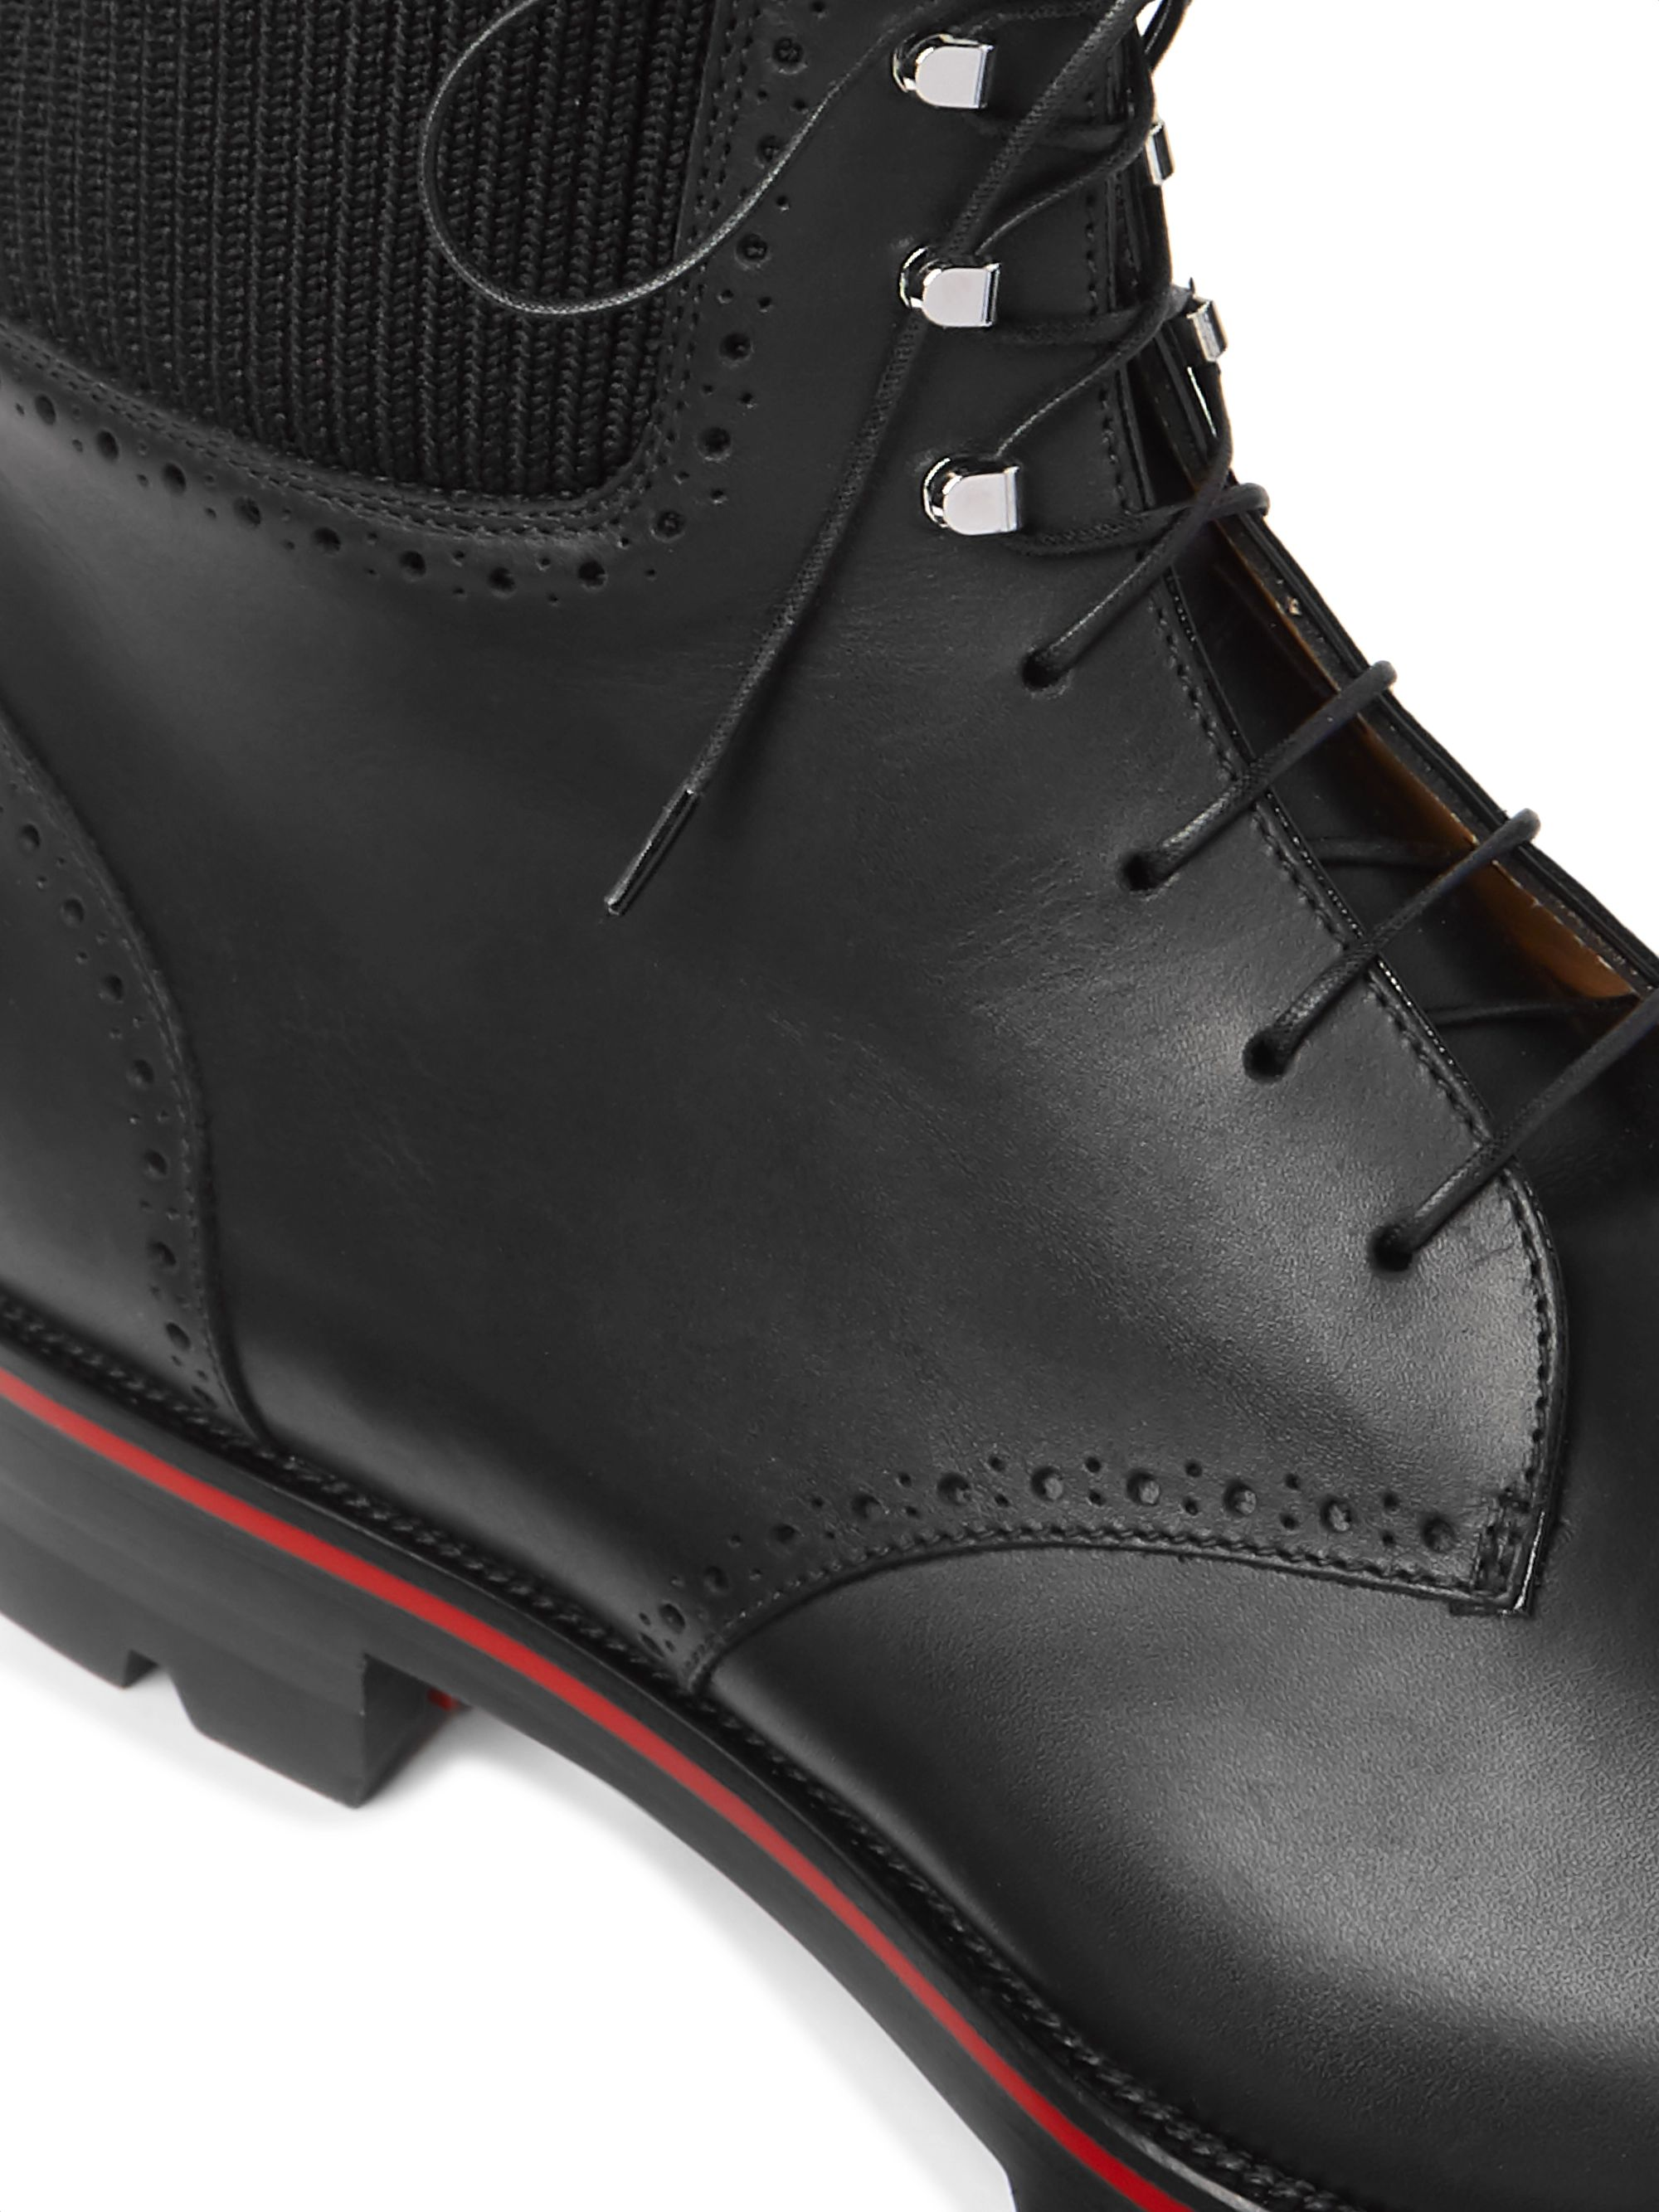 Trapman Leather Boots